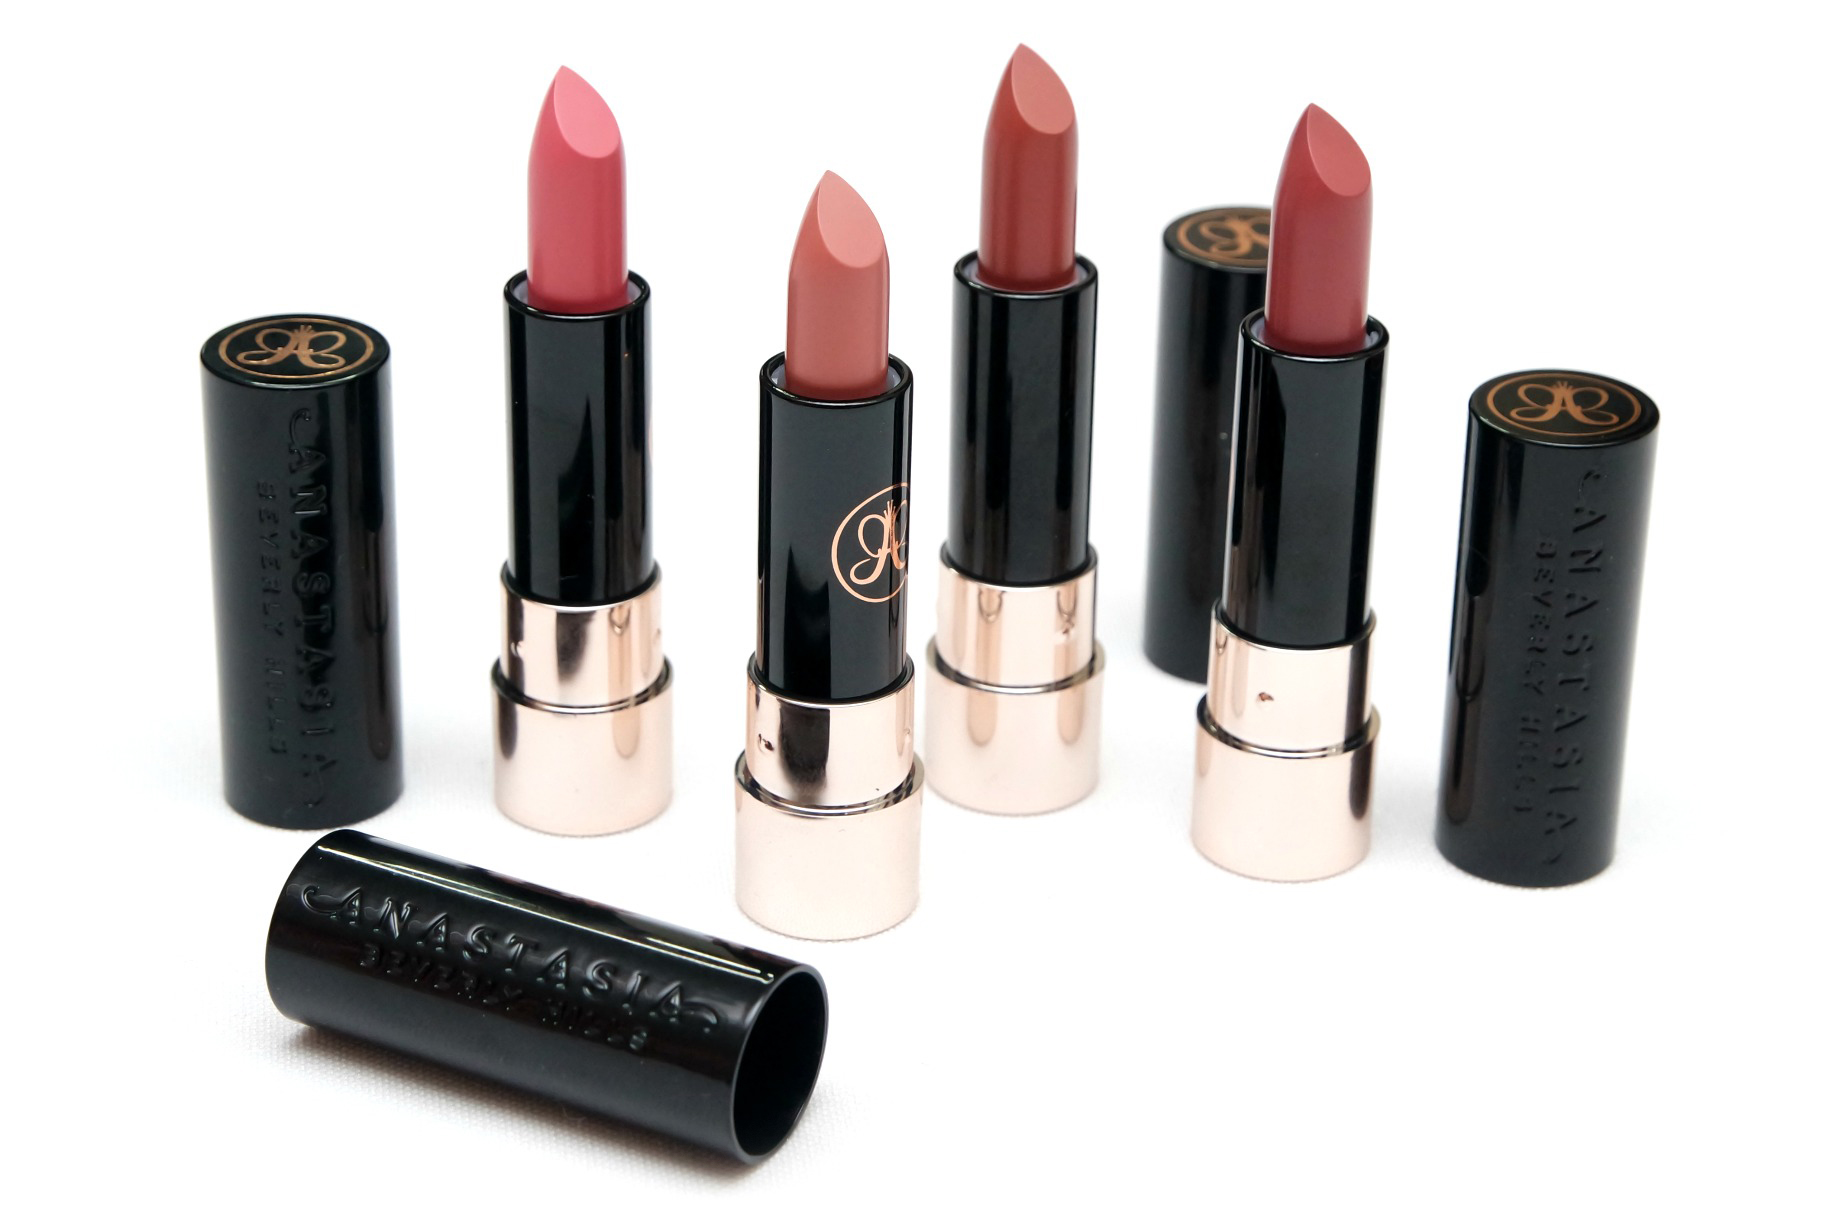 Find great deals on eBay for Lipstick Set in Lipstick. Shop with confidence.